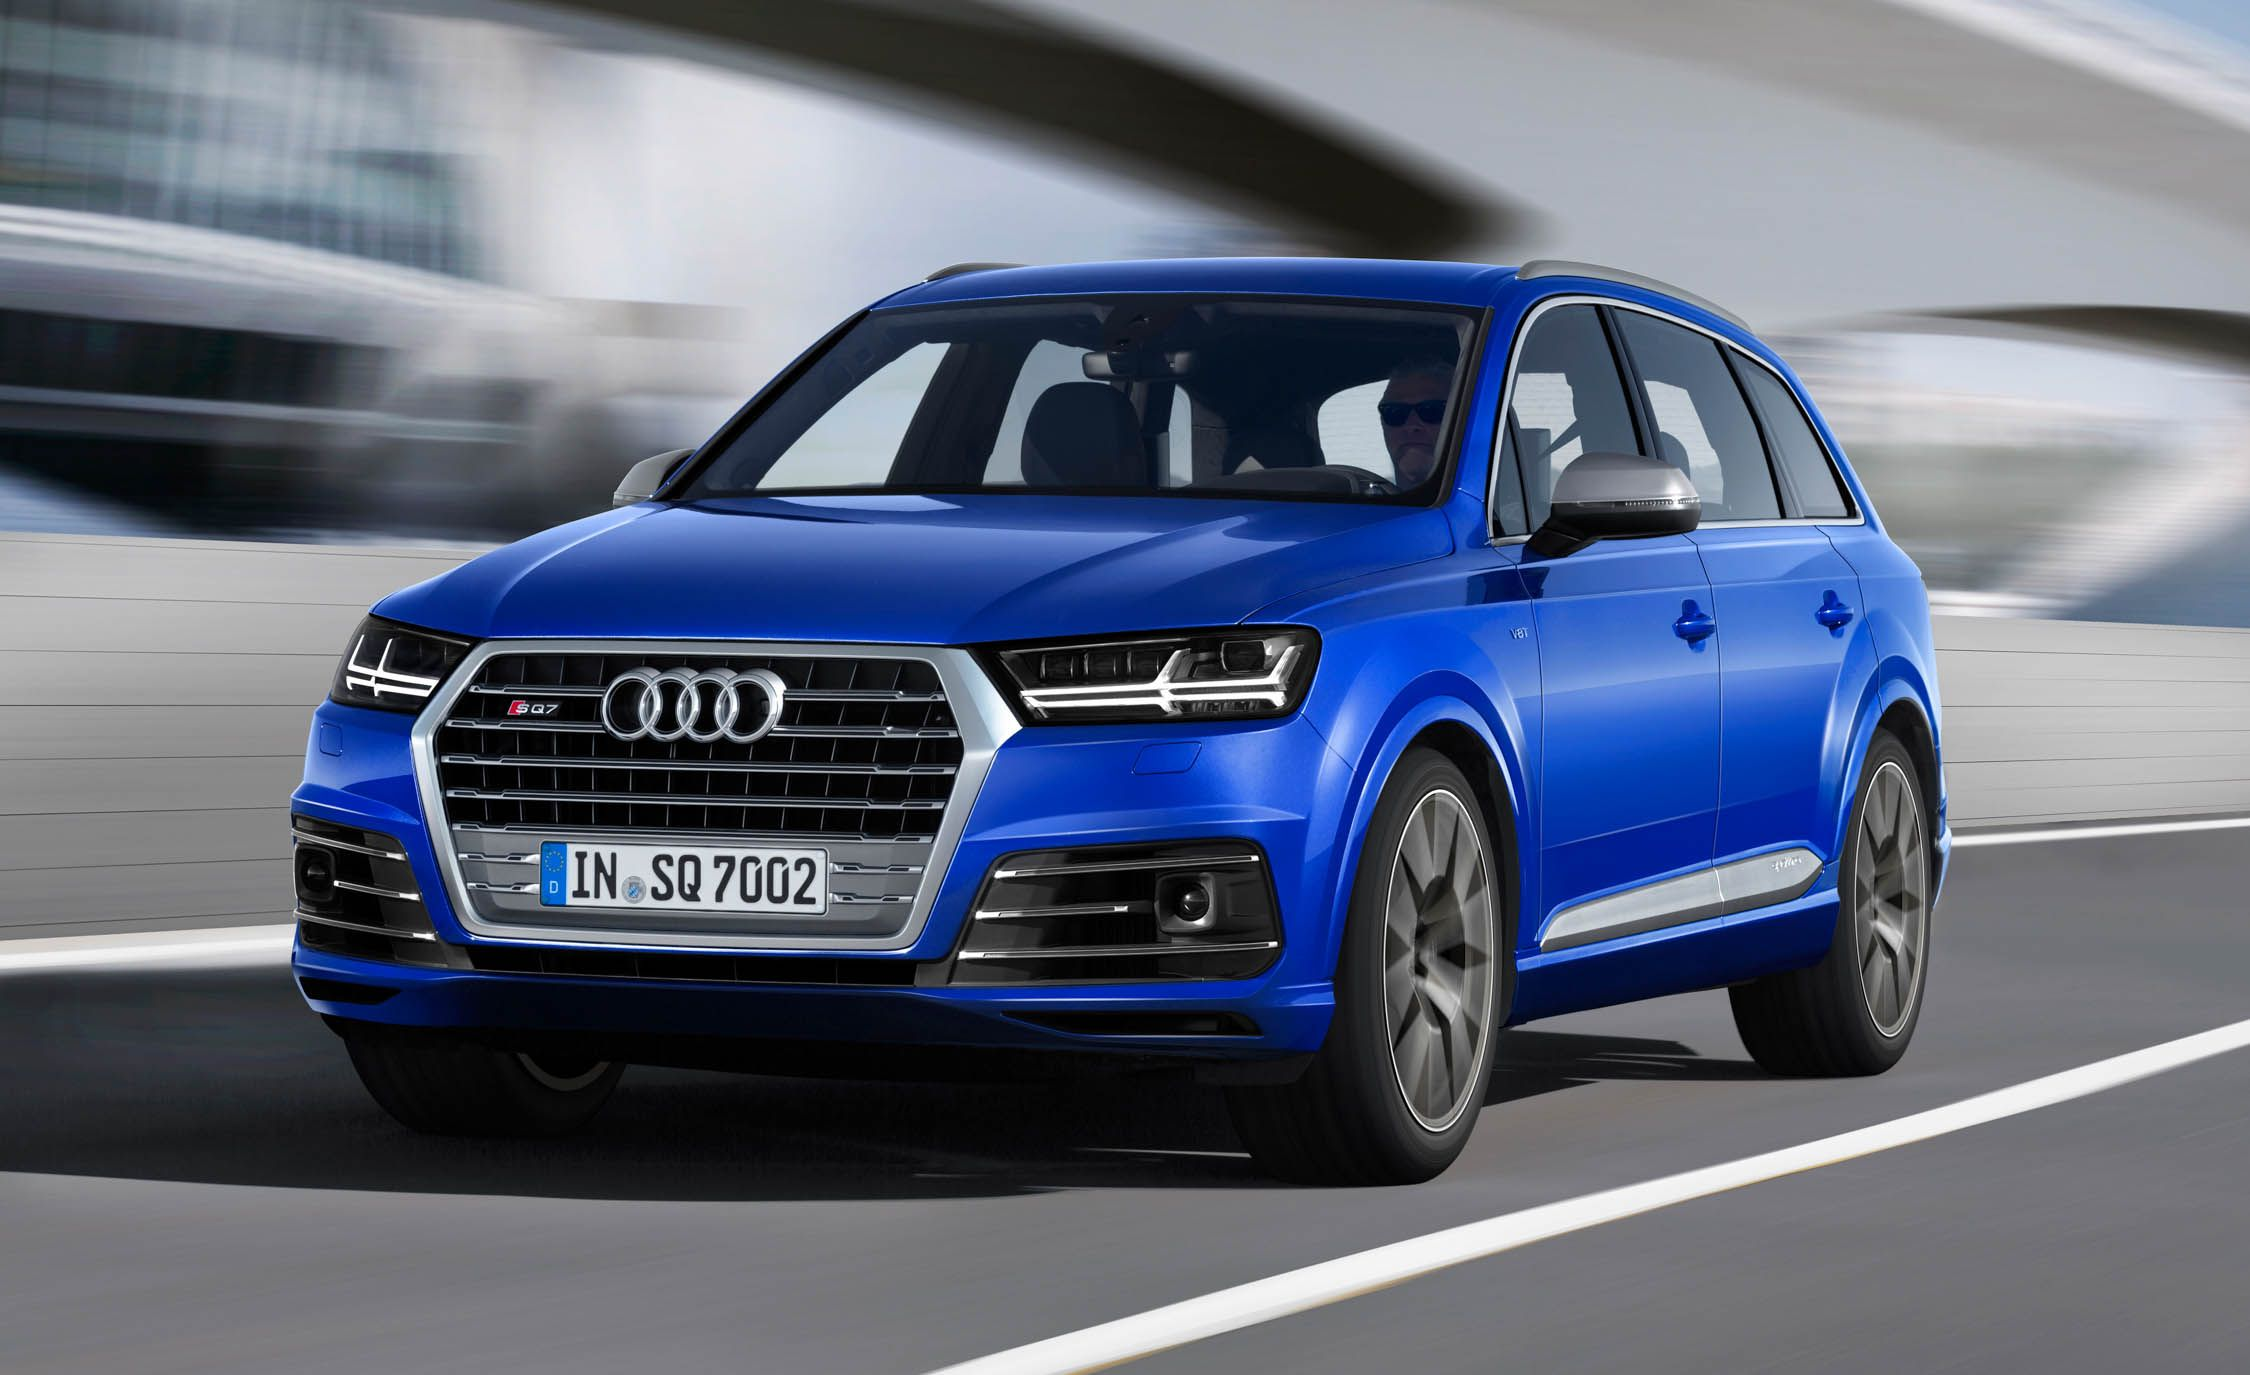 2018 Audi Sq7 Tdi The Superest Sel Suv